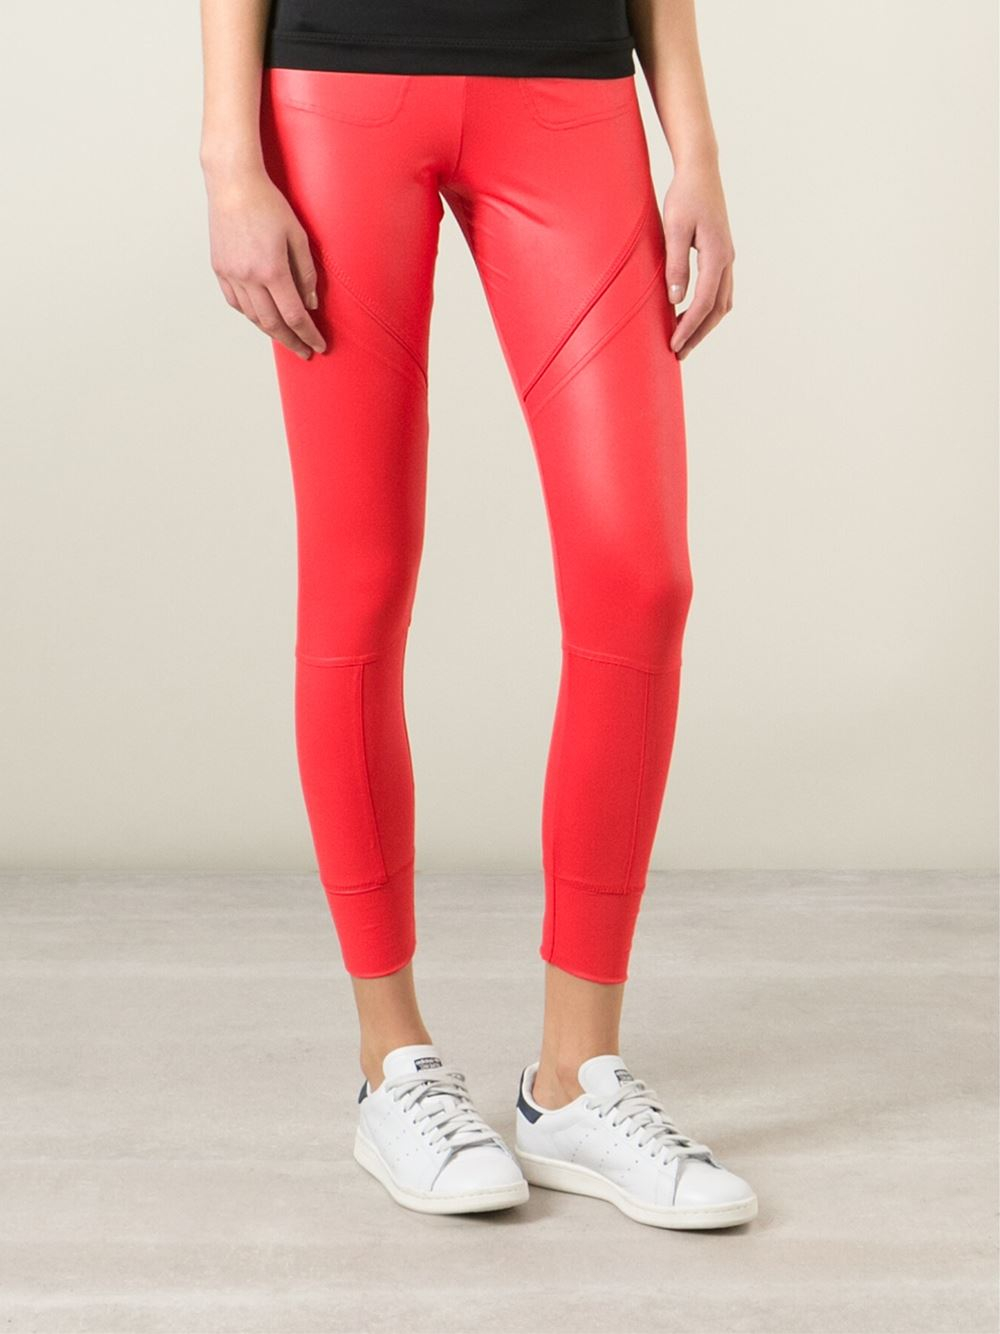 Adidas by stella mccartney 'Run Seven-Eight' Running Leggings in ...